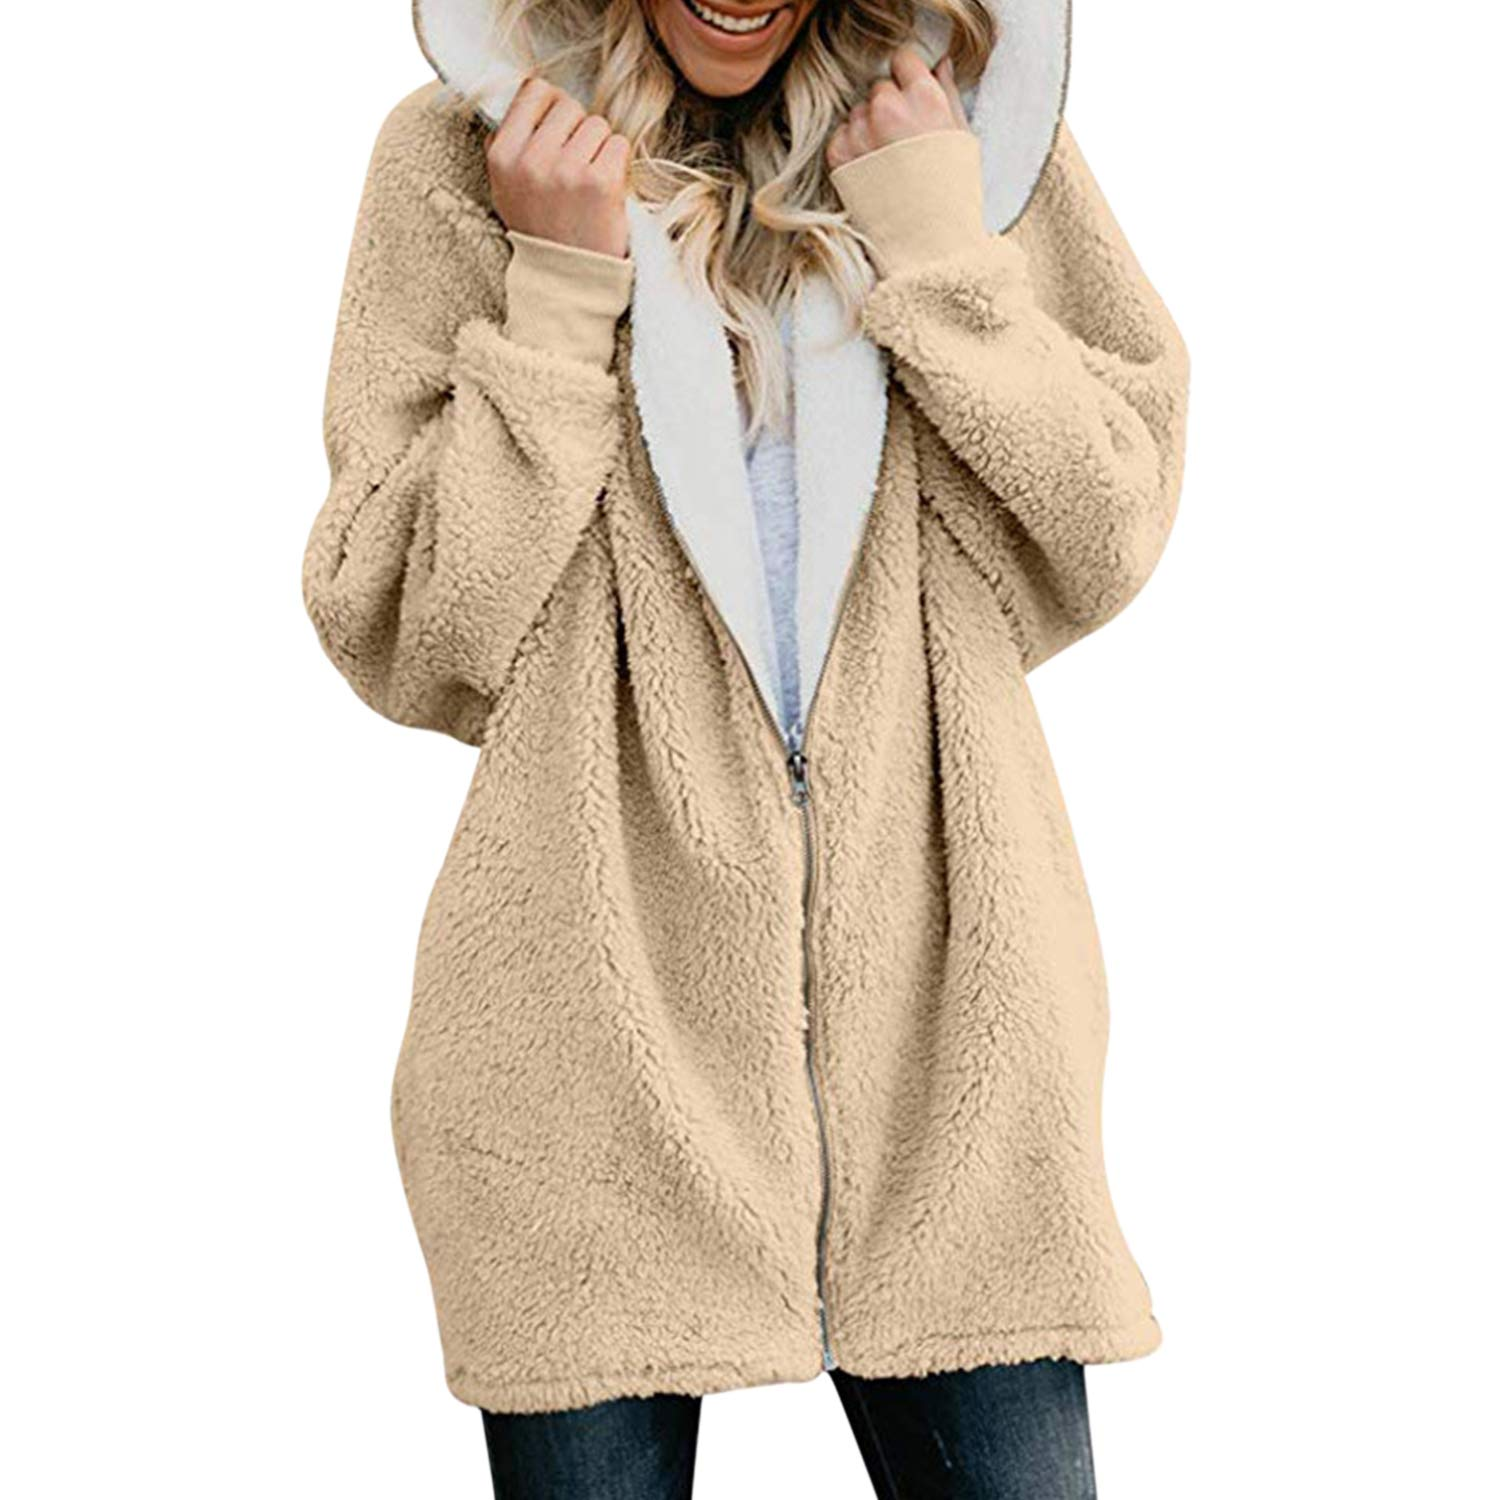 Katesid Lady Winter Fleece Jaket Sherpa Hoodie Casual Stylish Zipper Coat